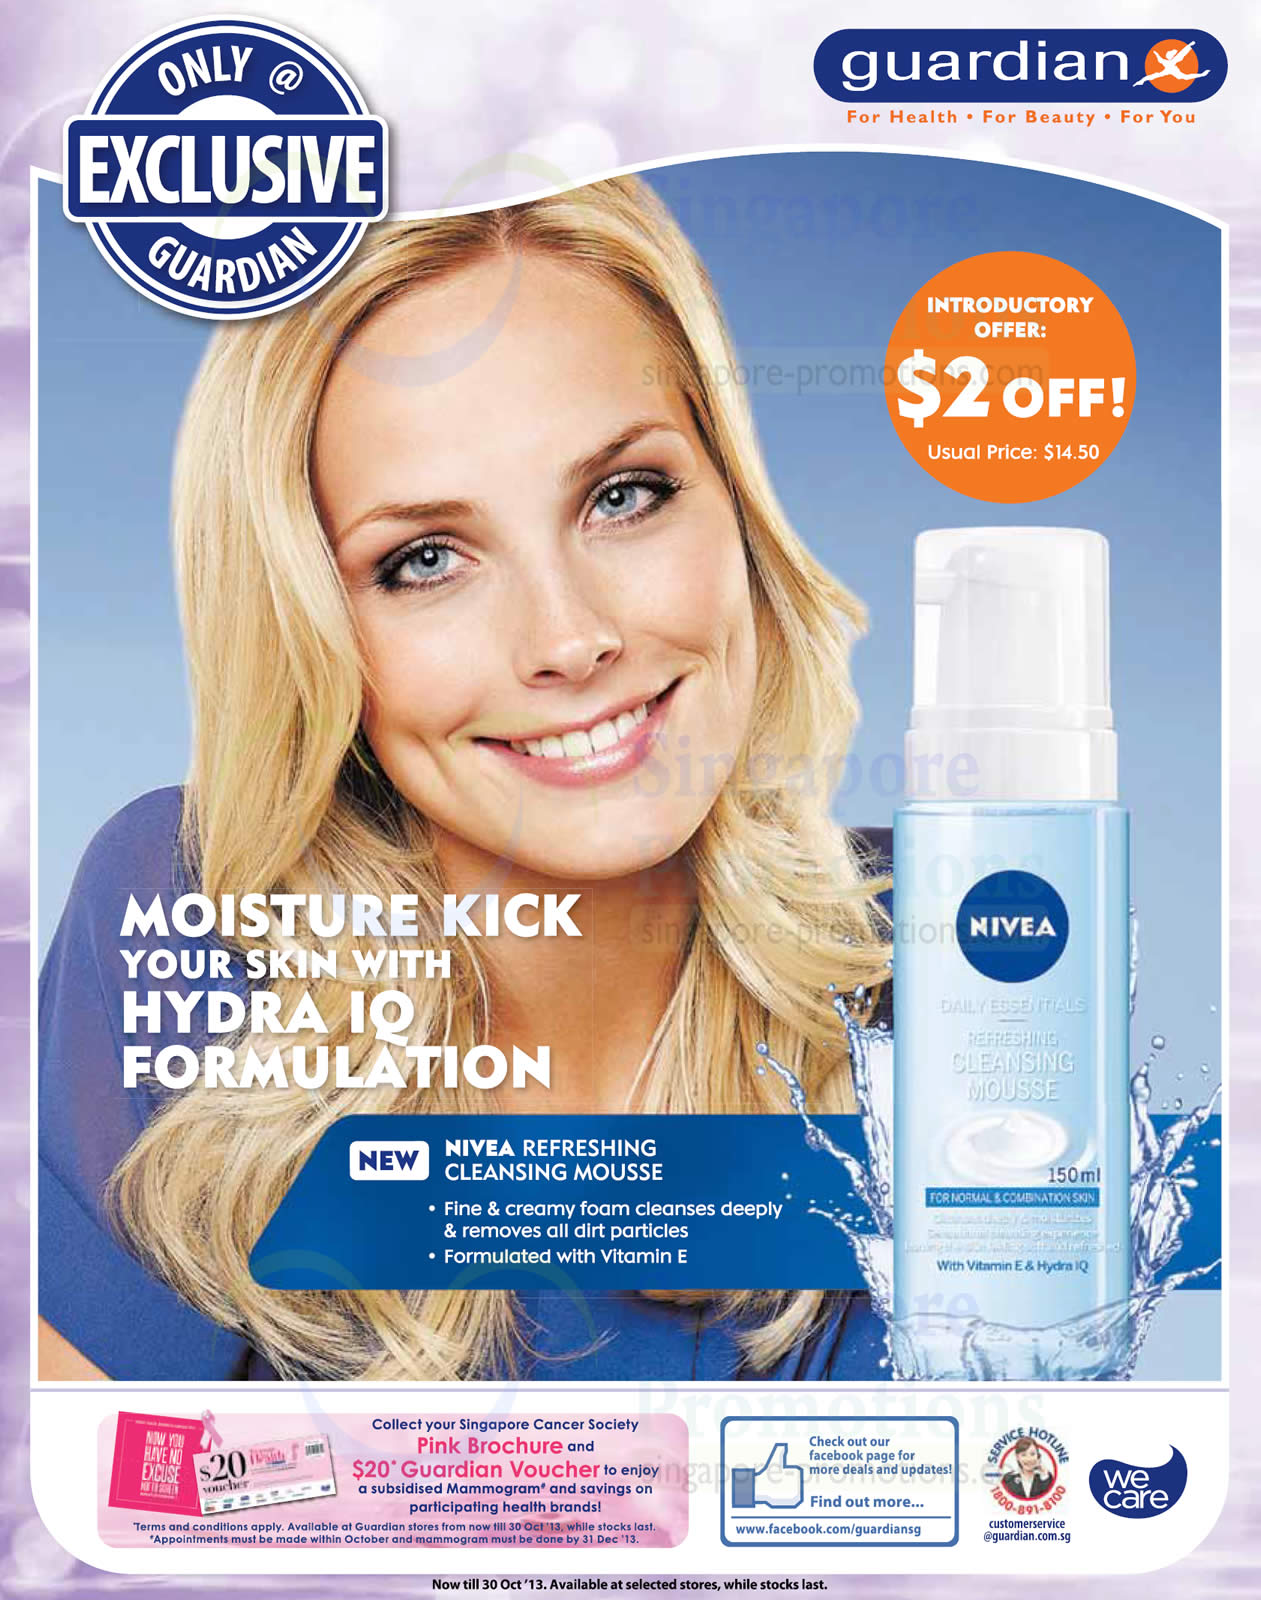 Nivea Refreshing Cleaning Mousse